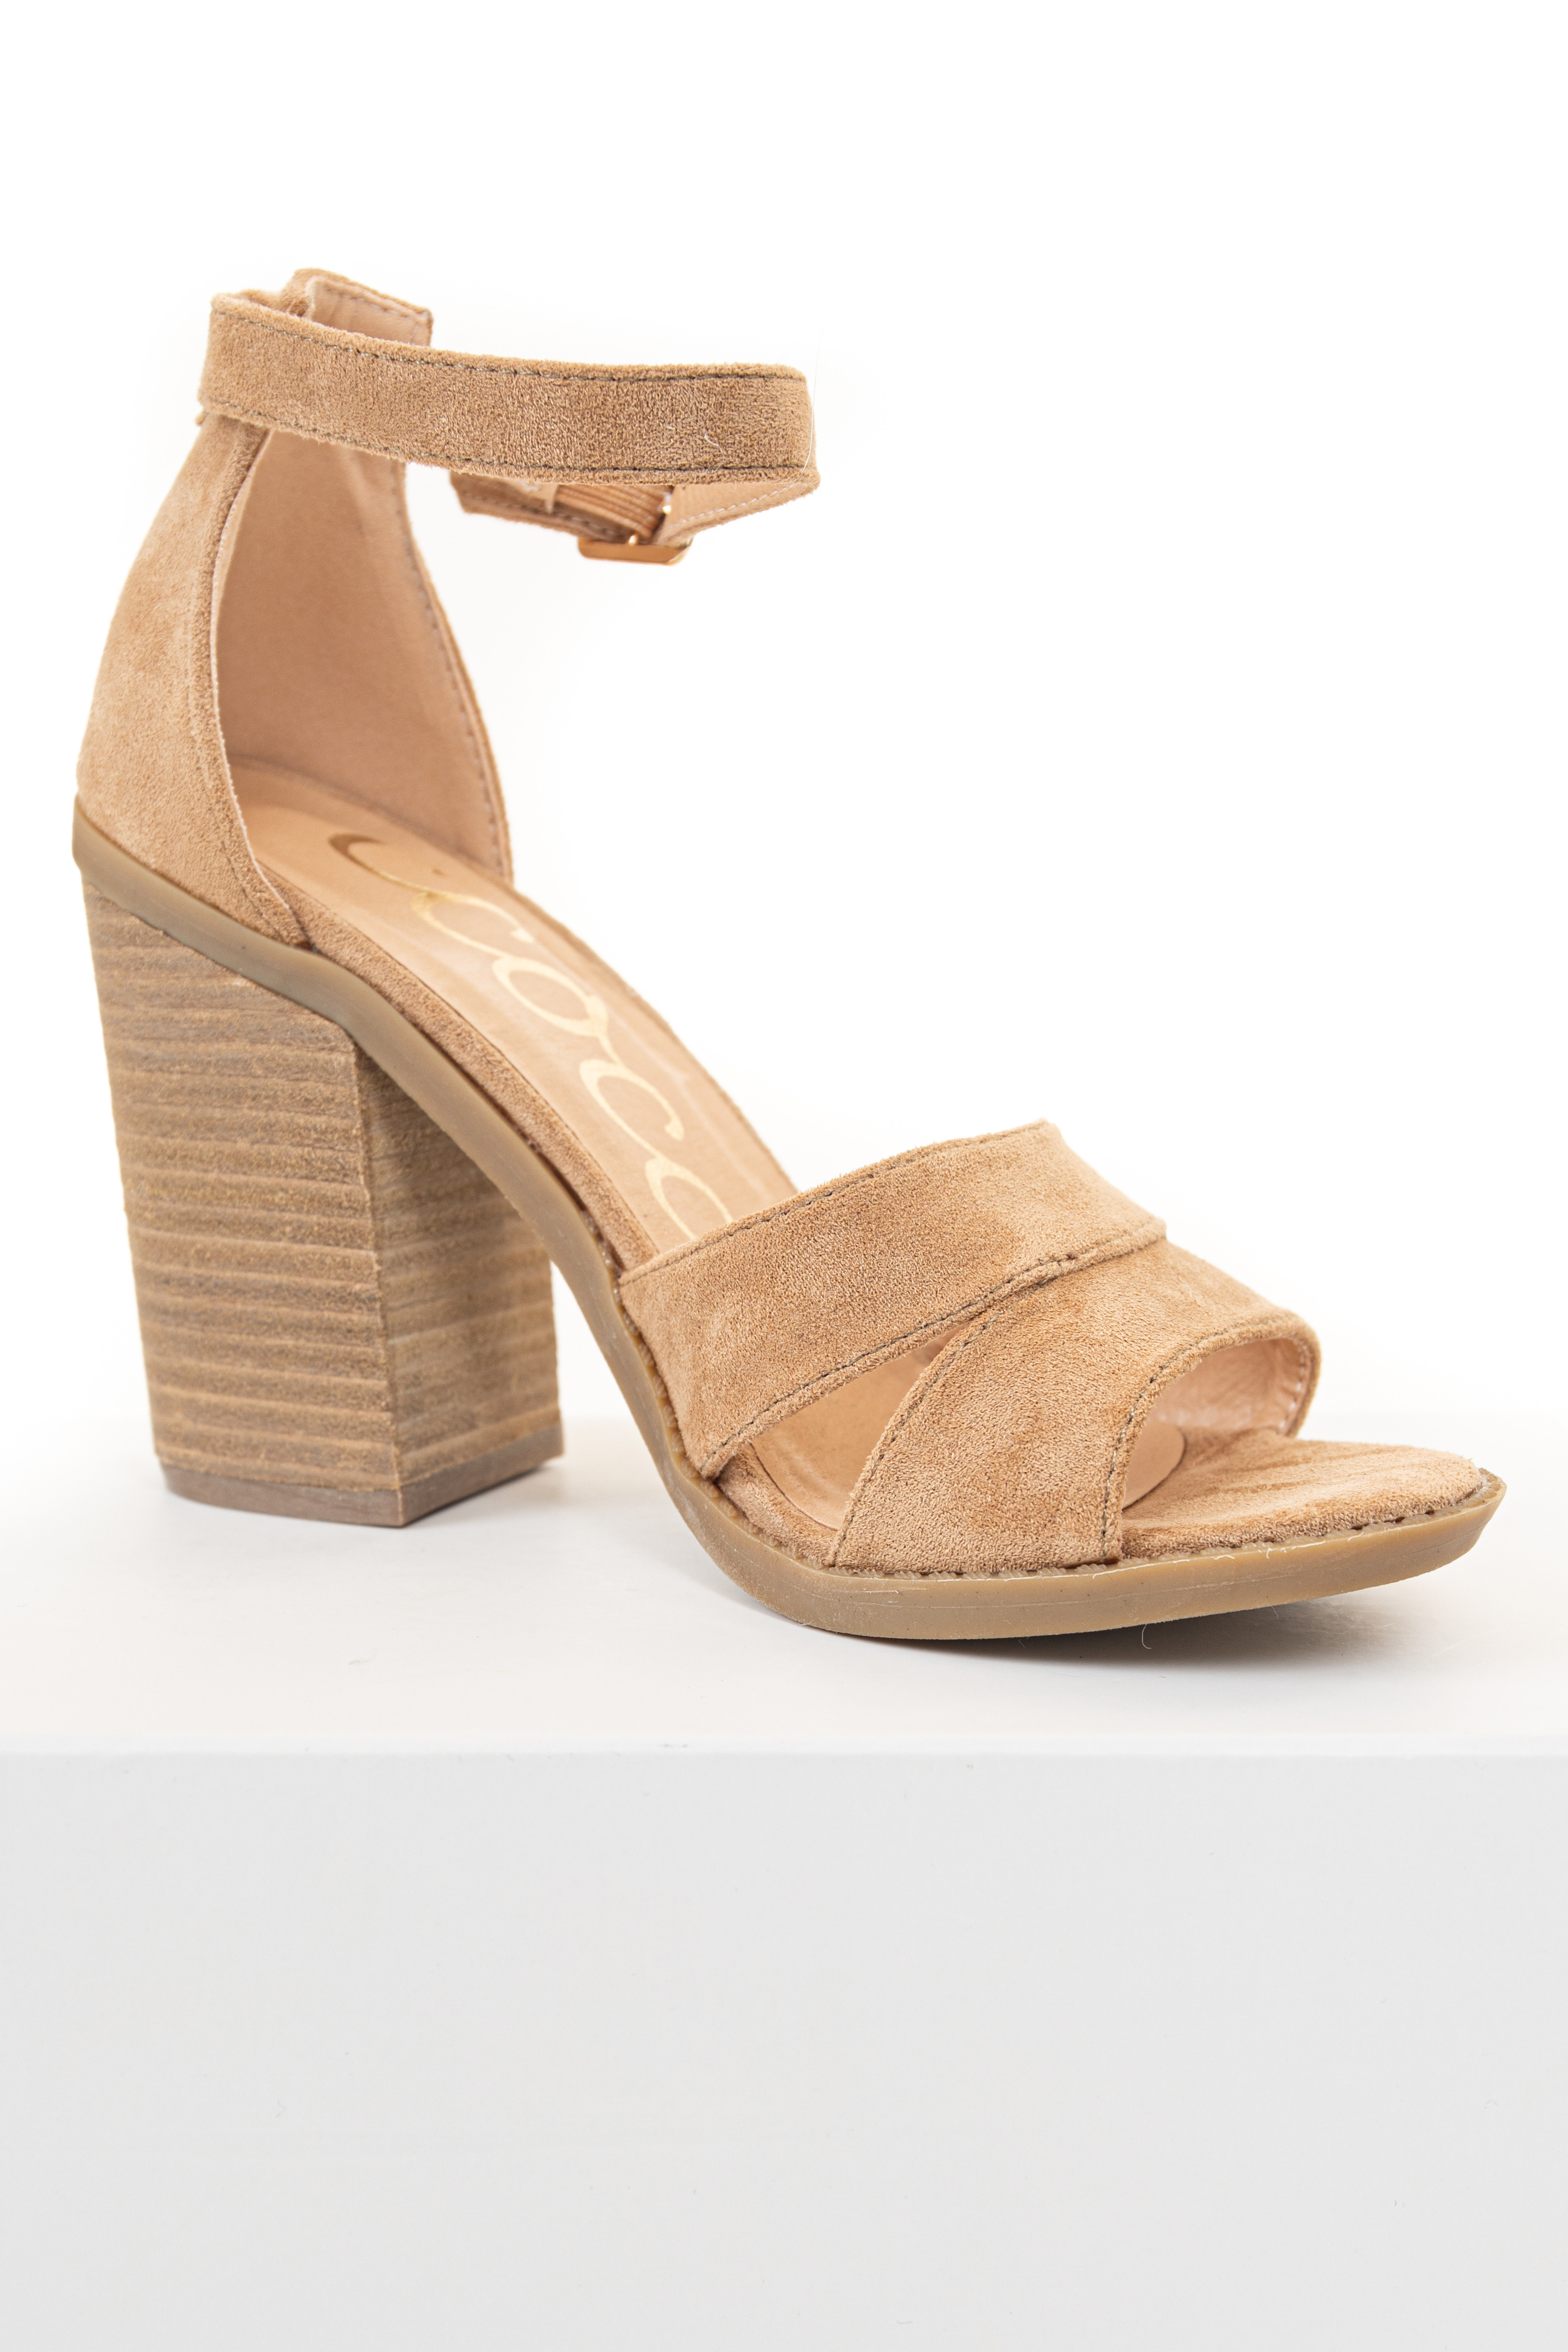 Beige Faux Suede Strappy High Heels with Buckle Closure